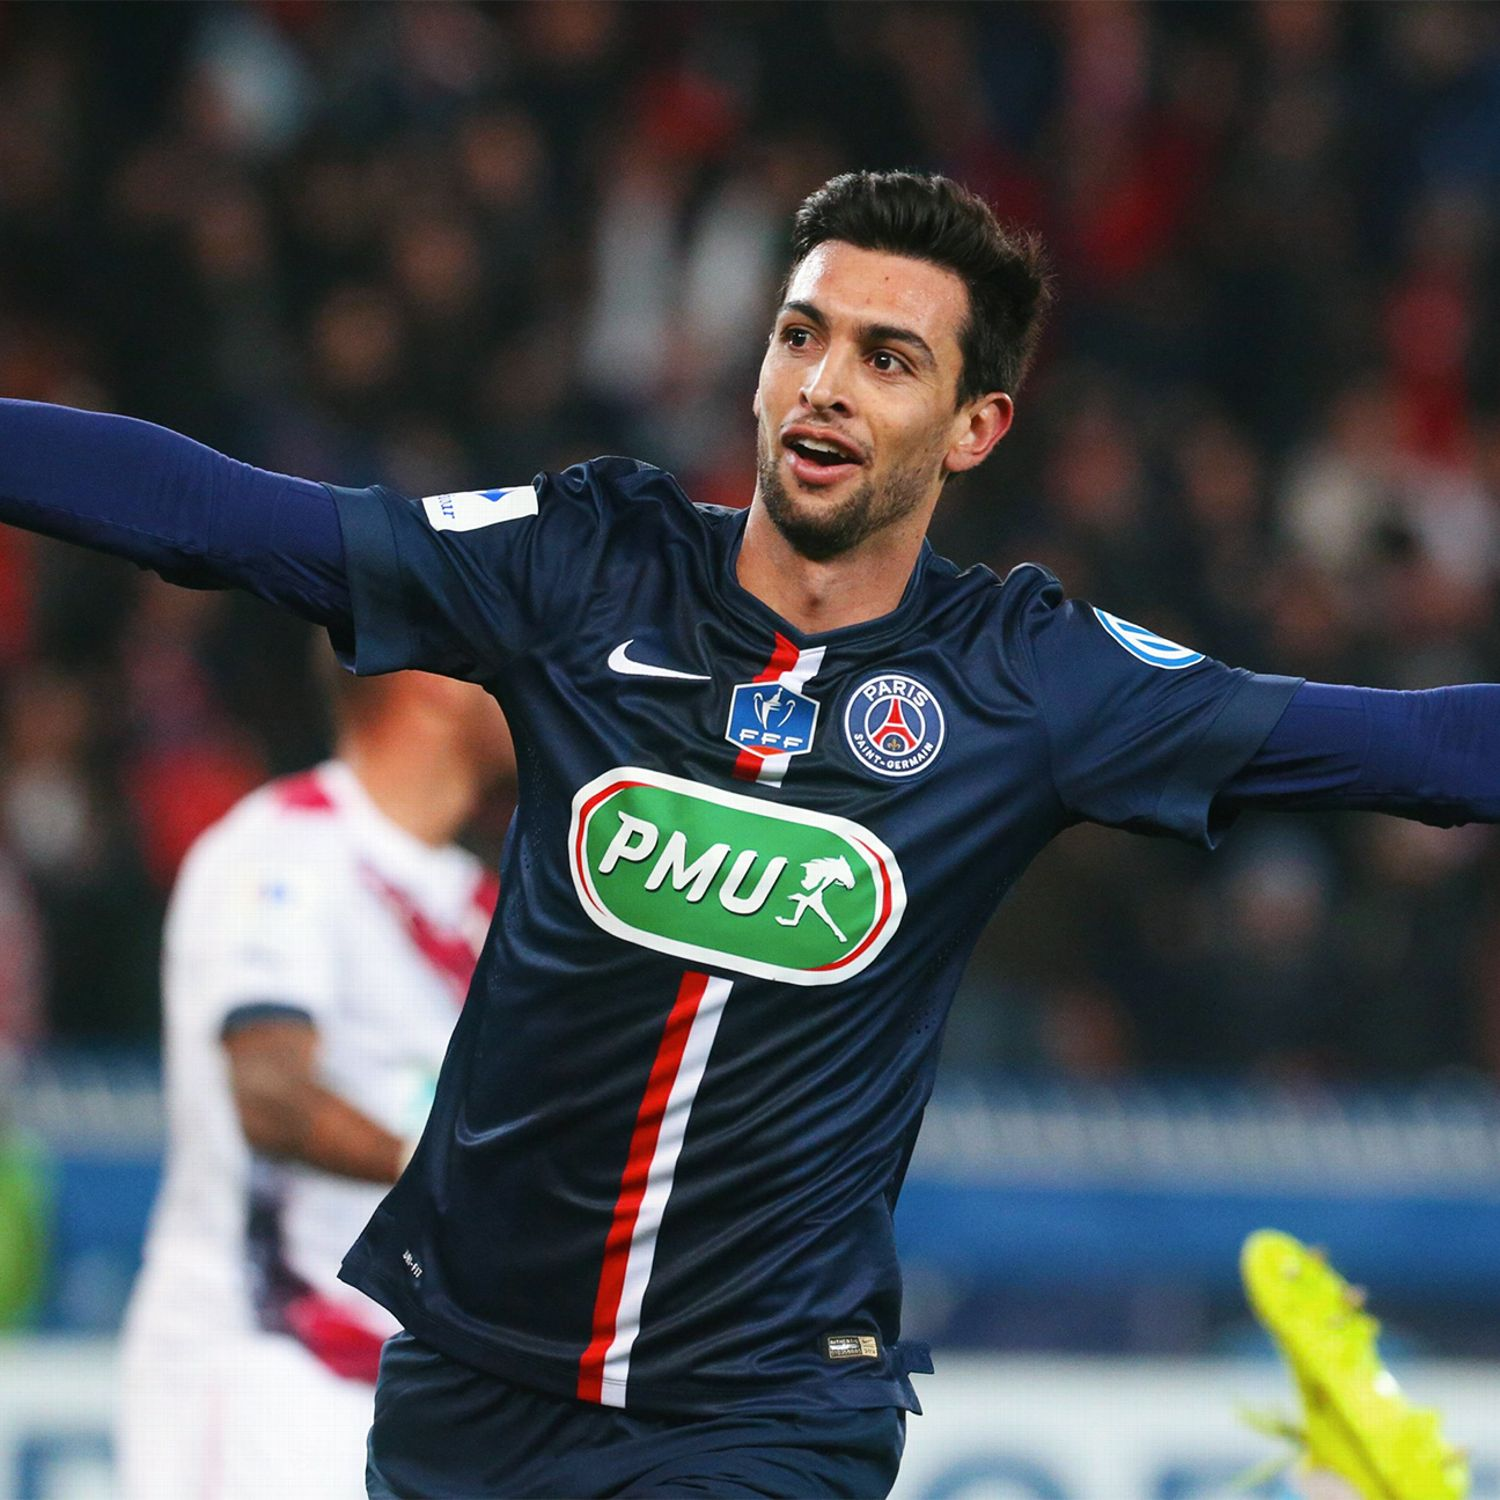 Javier Pastore: Javier Pastore Richly Deserving Of New PSG Contract